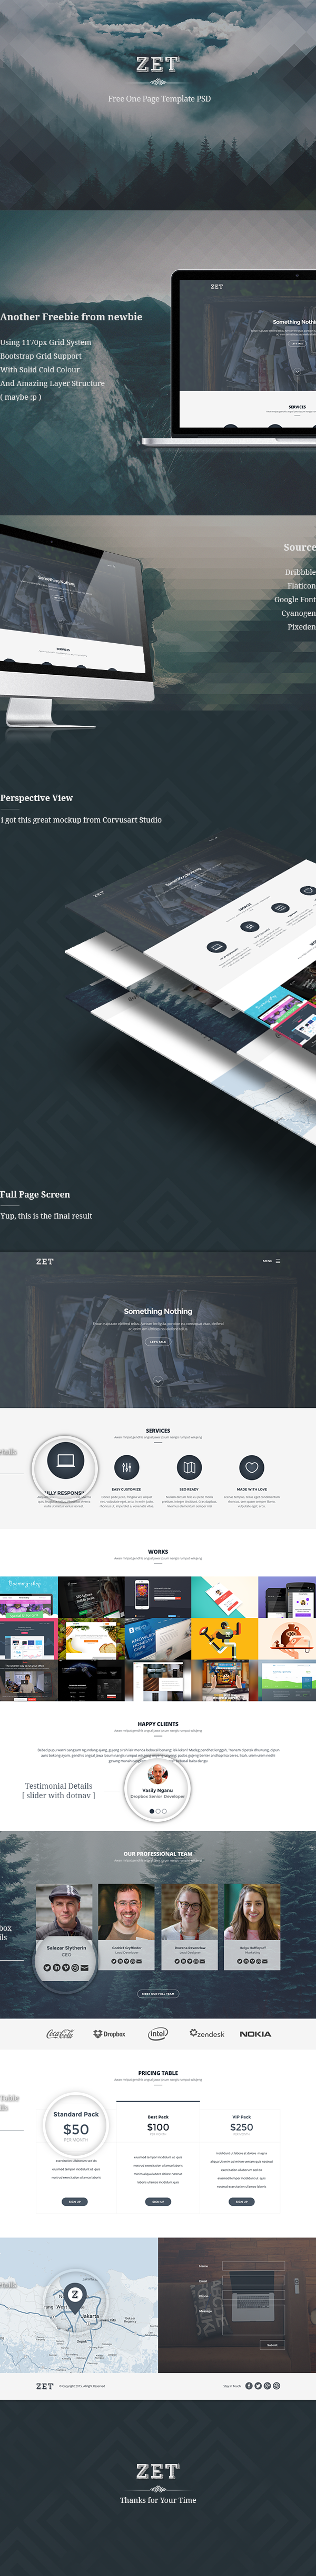 zet free one page template psd on behance